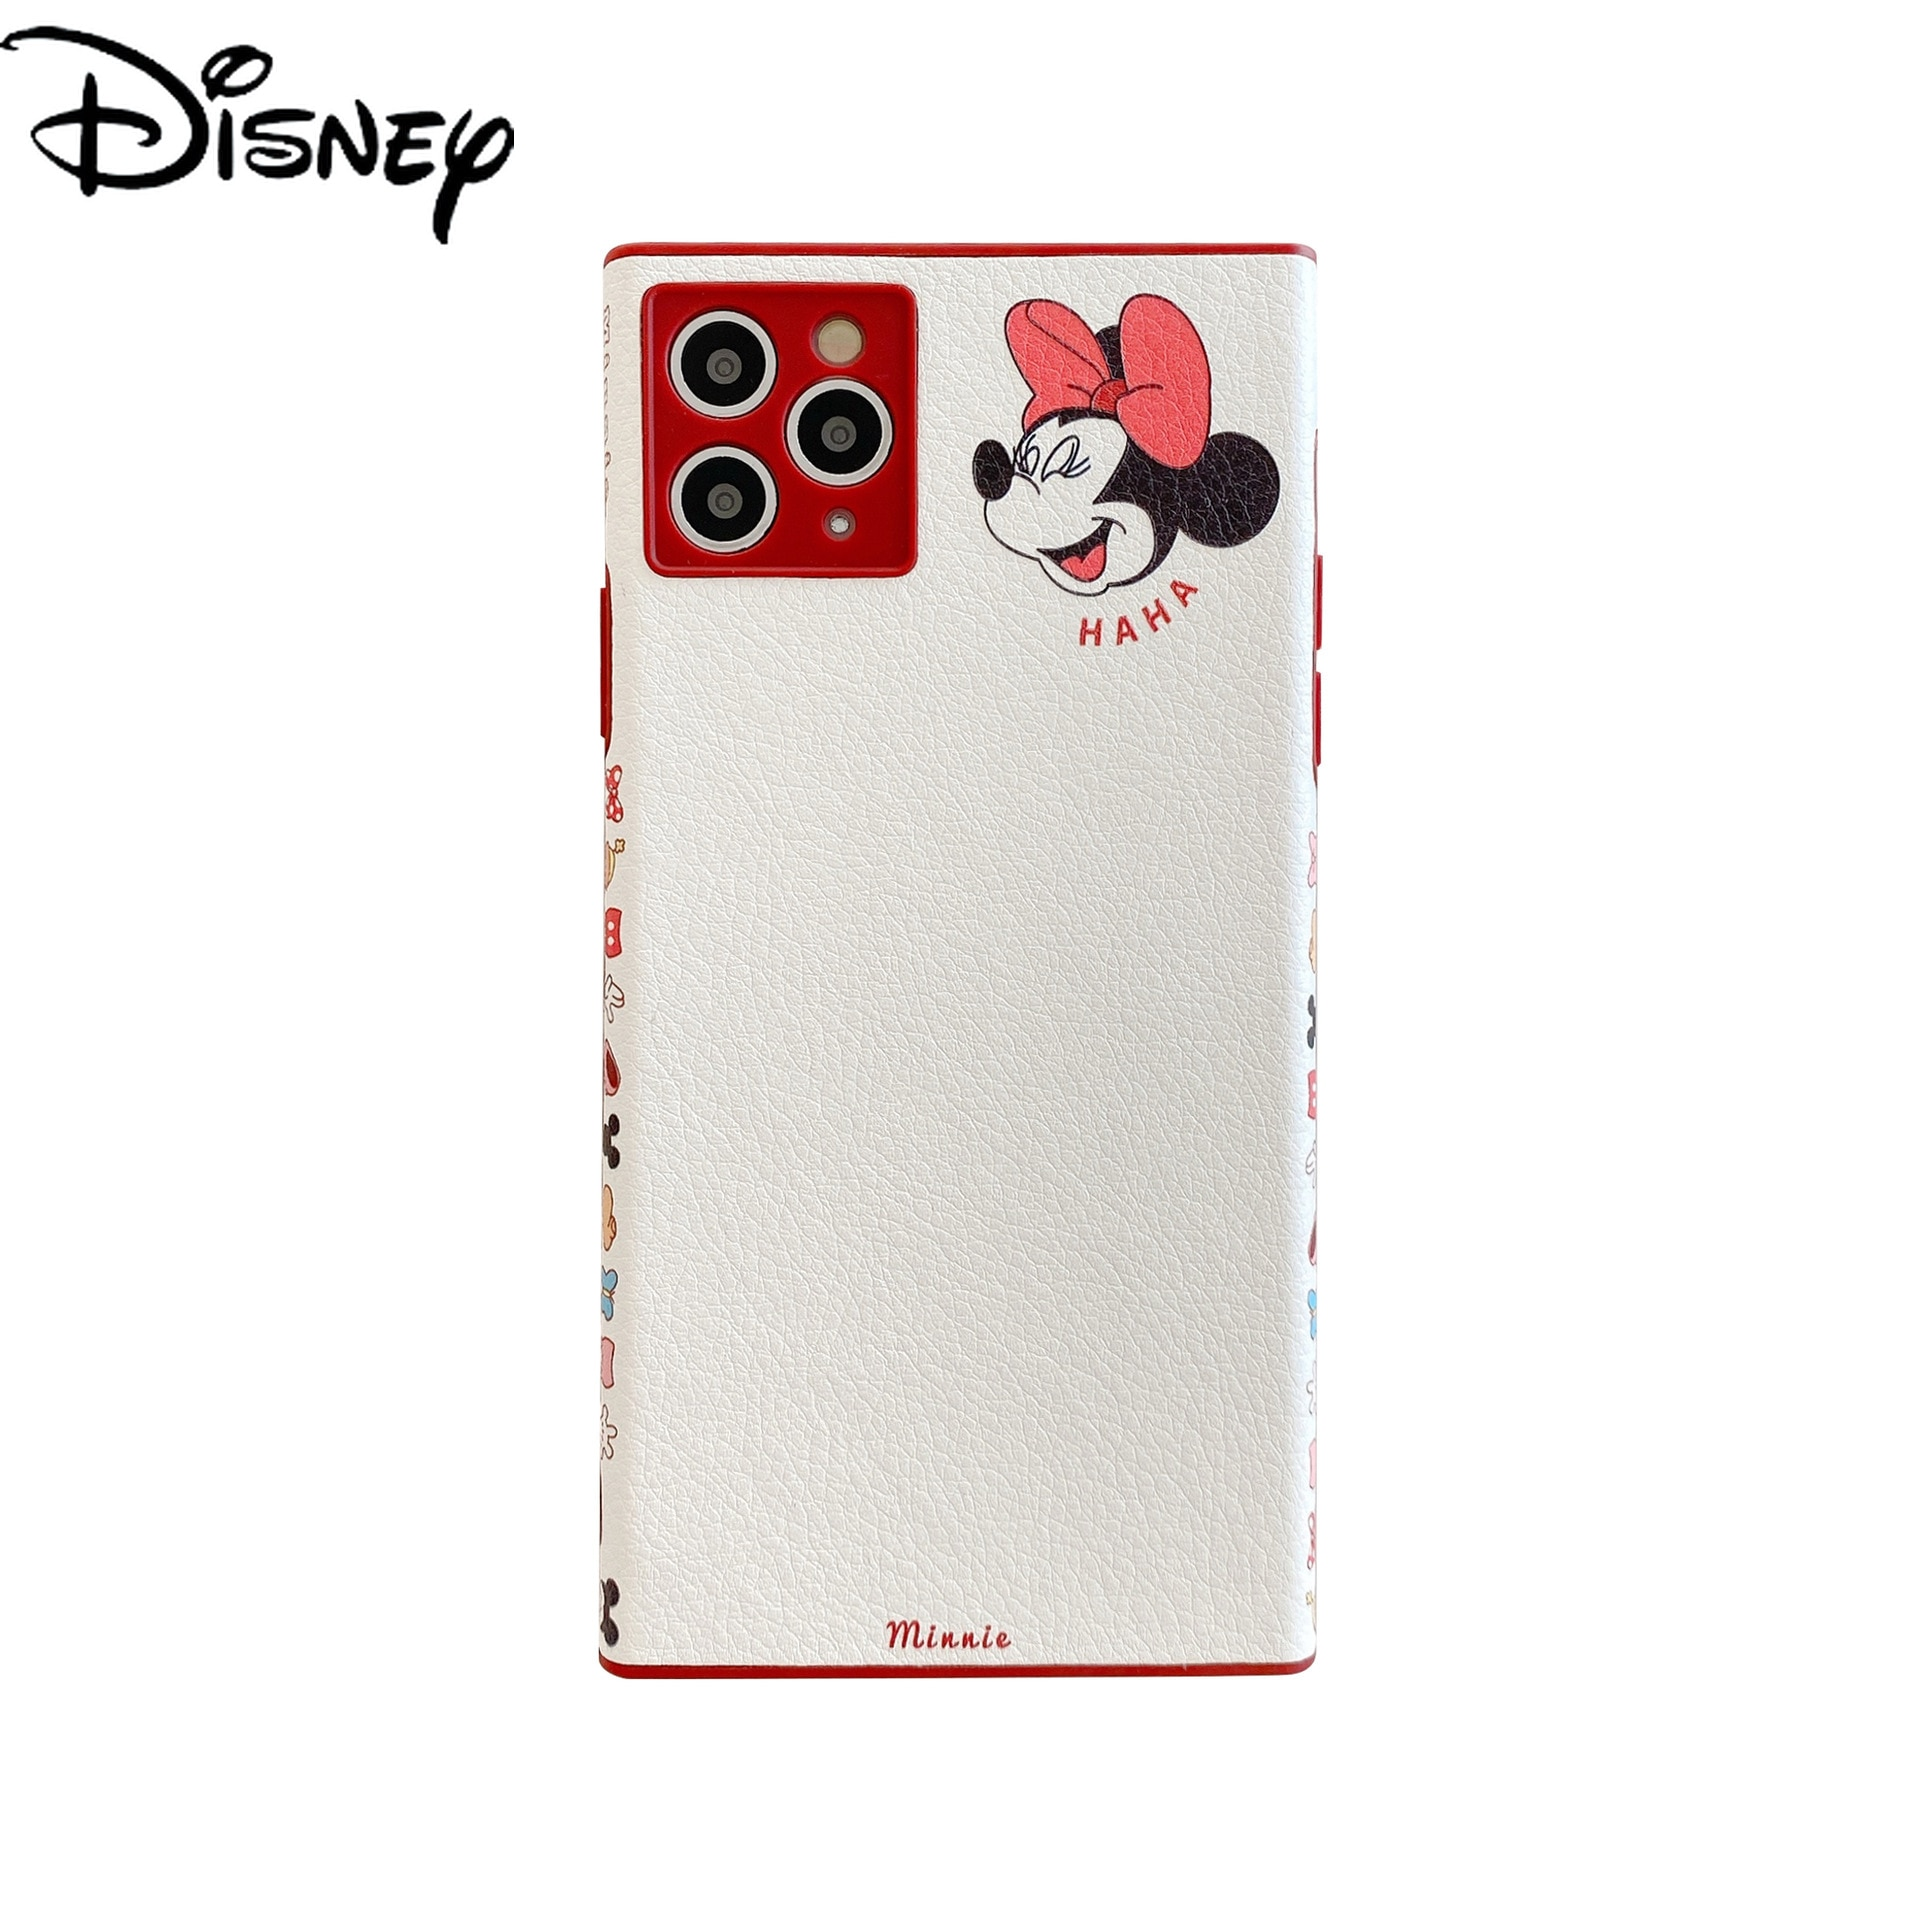 Disney Mobile Phone Cover for IPhone11 Mobile Phone Case XSmax/X/XR/7plus/12mini/7/8/7p Mobile Phone Case  - buy with discount